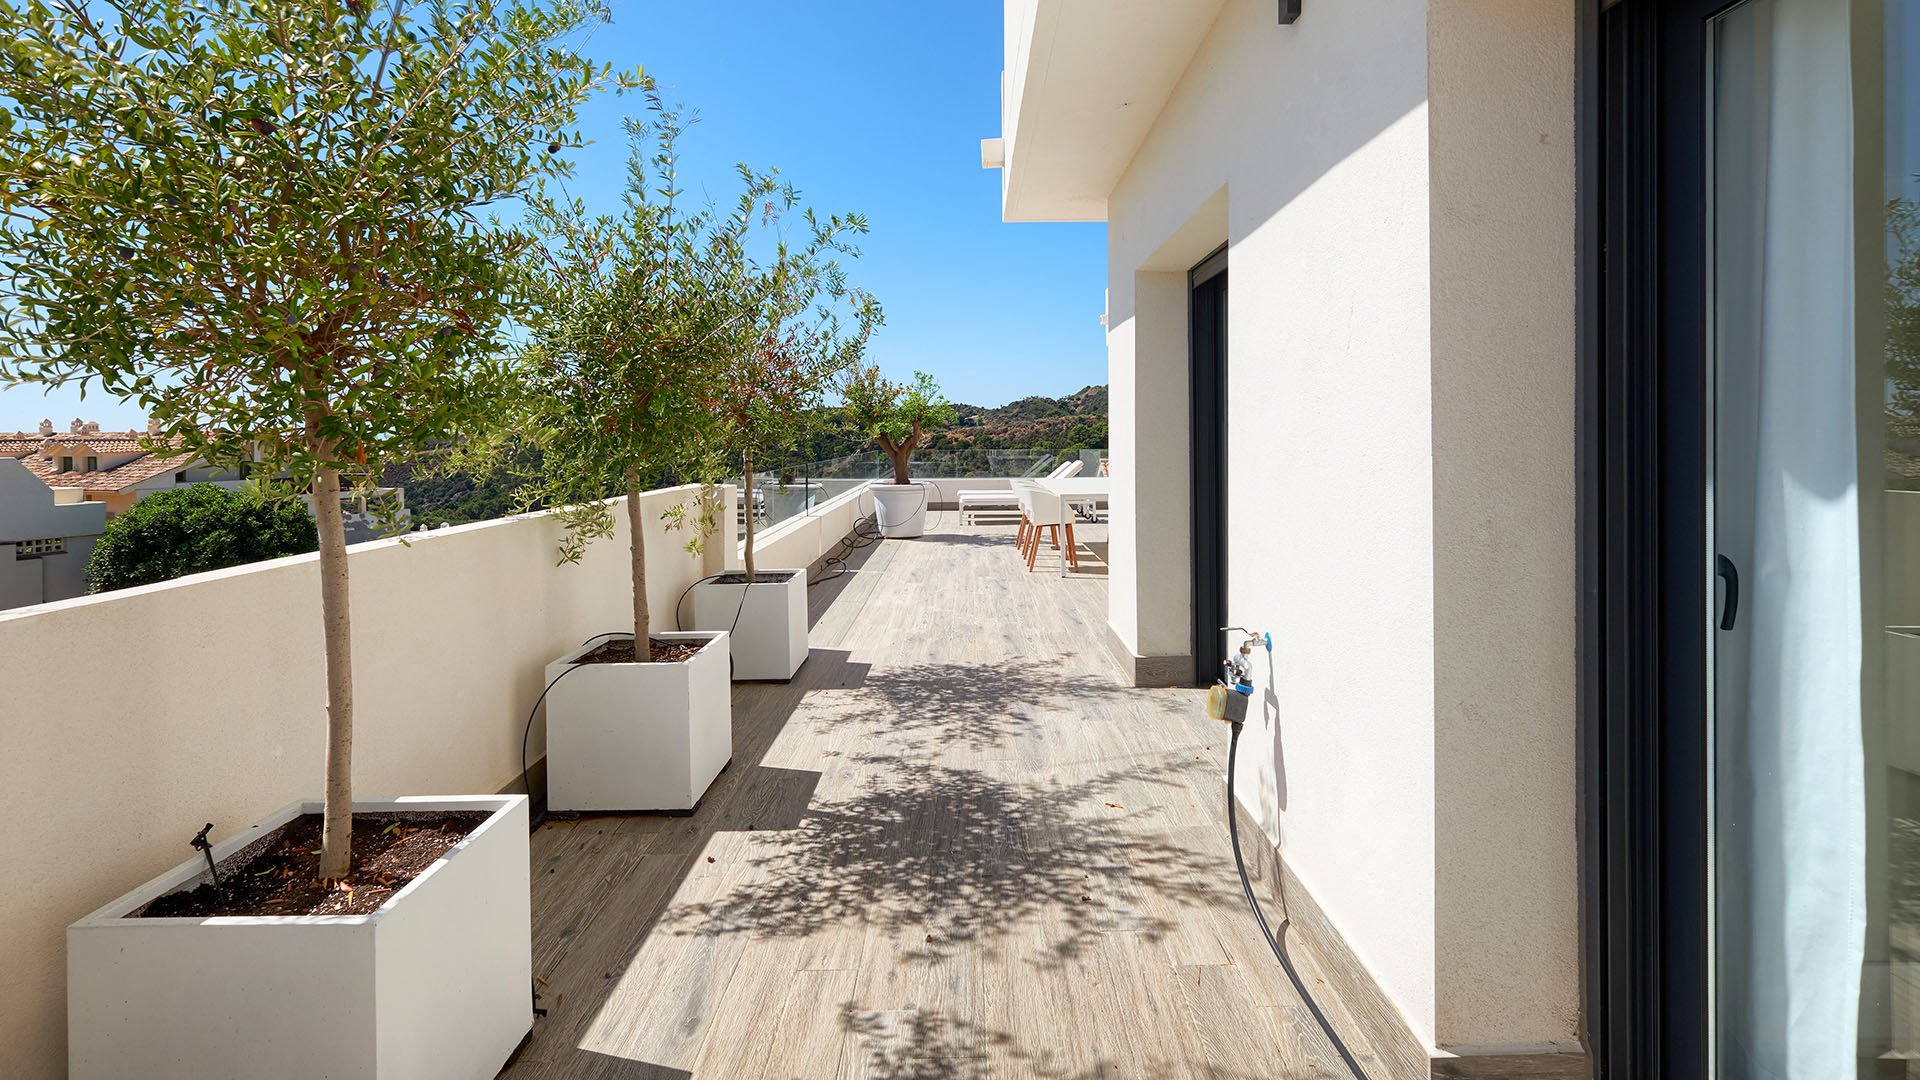 Ocean Hills: Beautifully situated semi-groundfloor apartment in La Resina